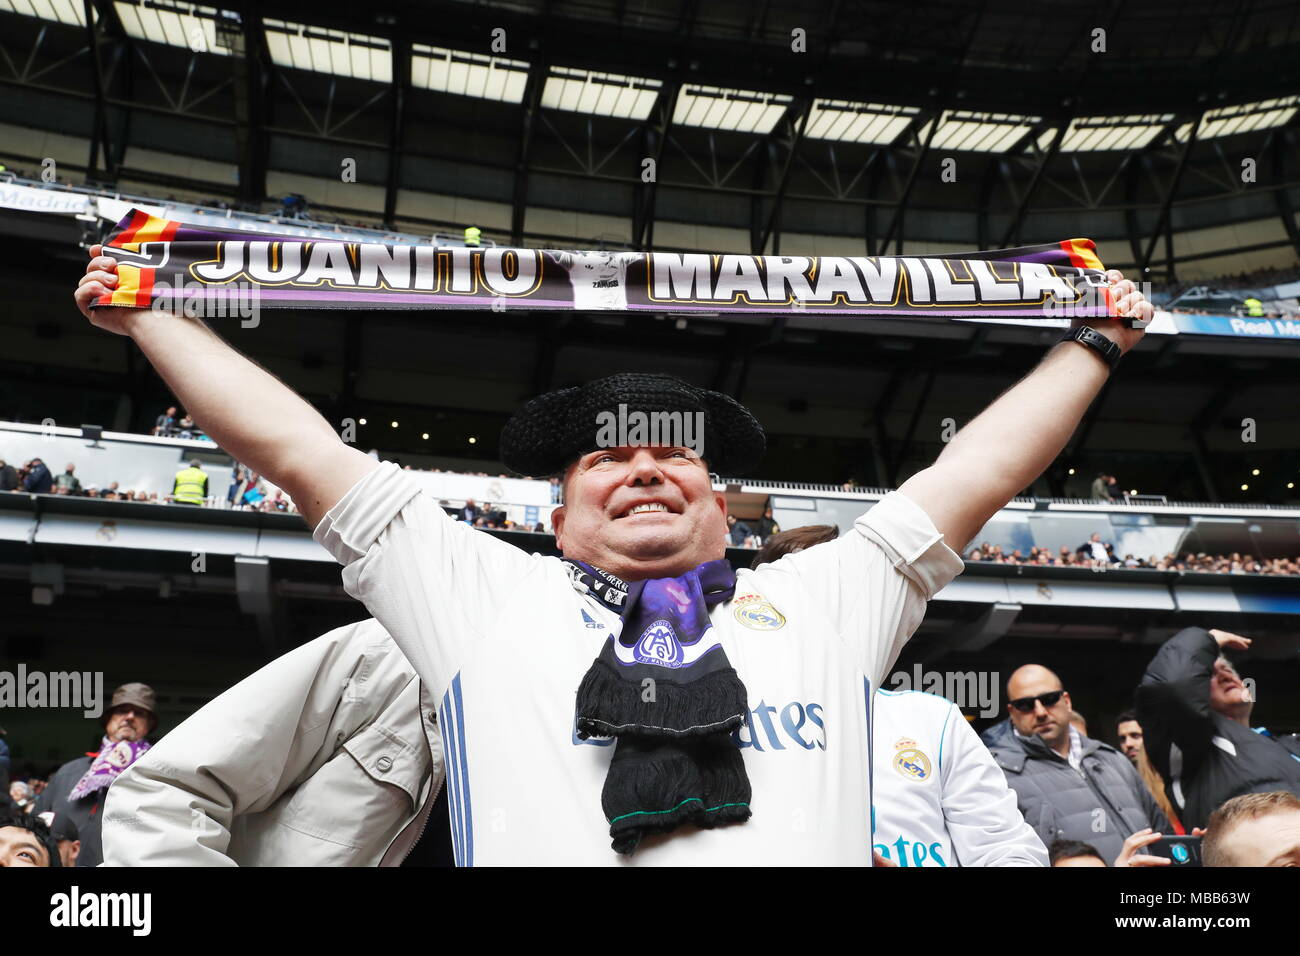 2e84eb17a General view Football/Soccer : Real Madrid fan, Spanish